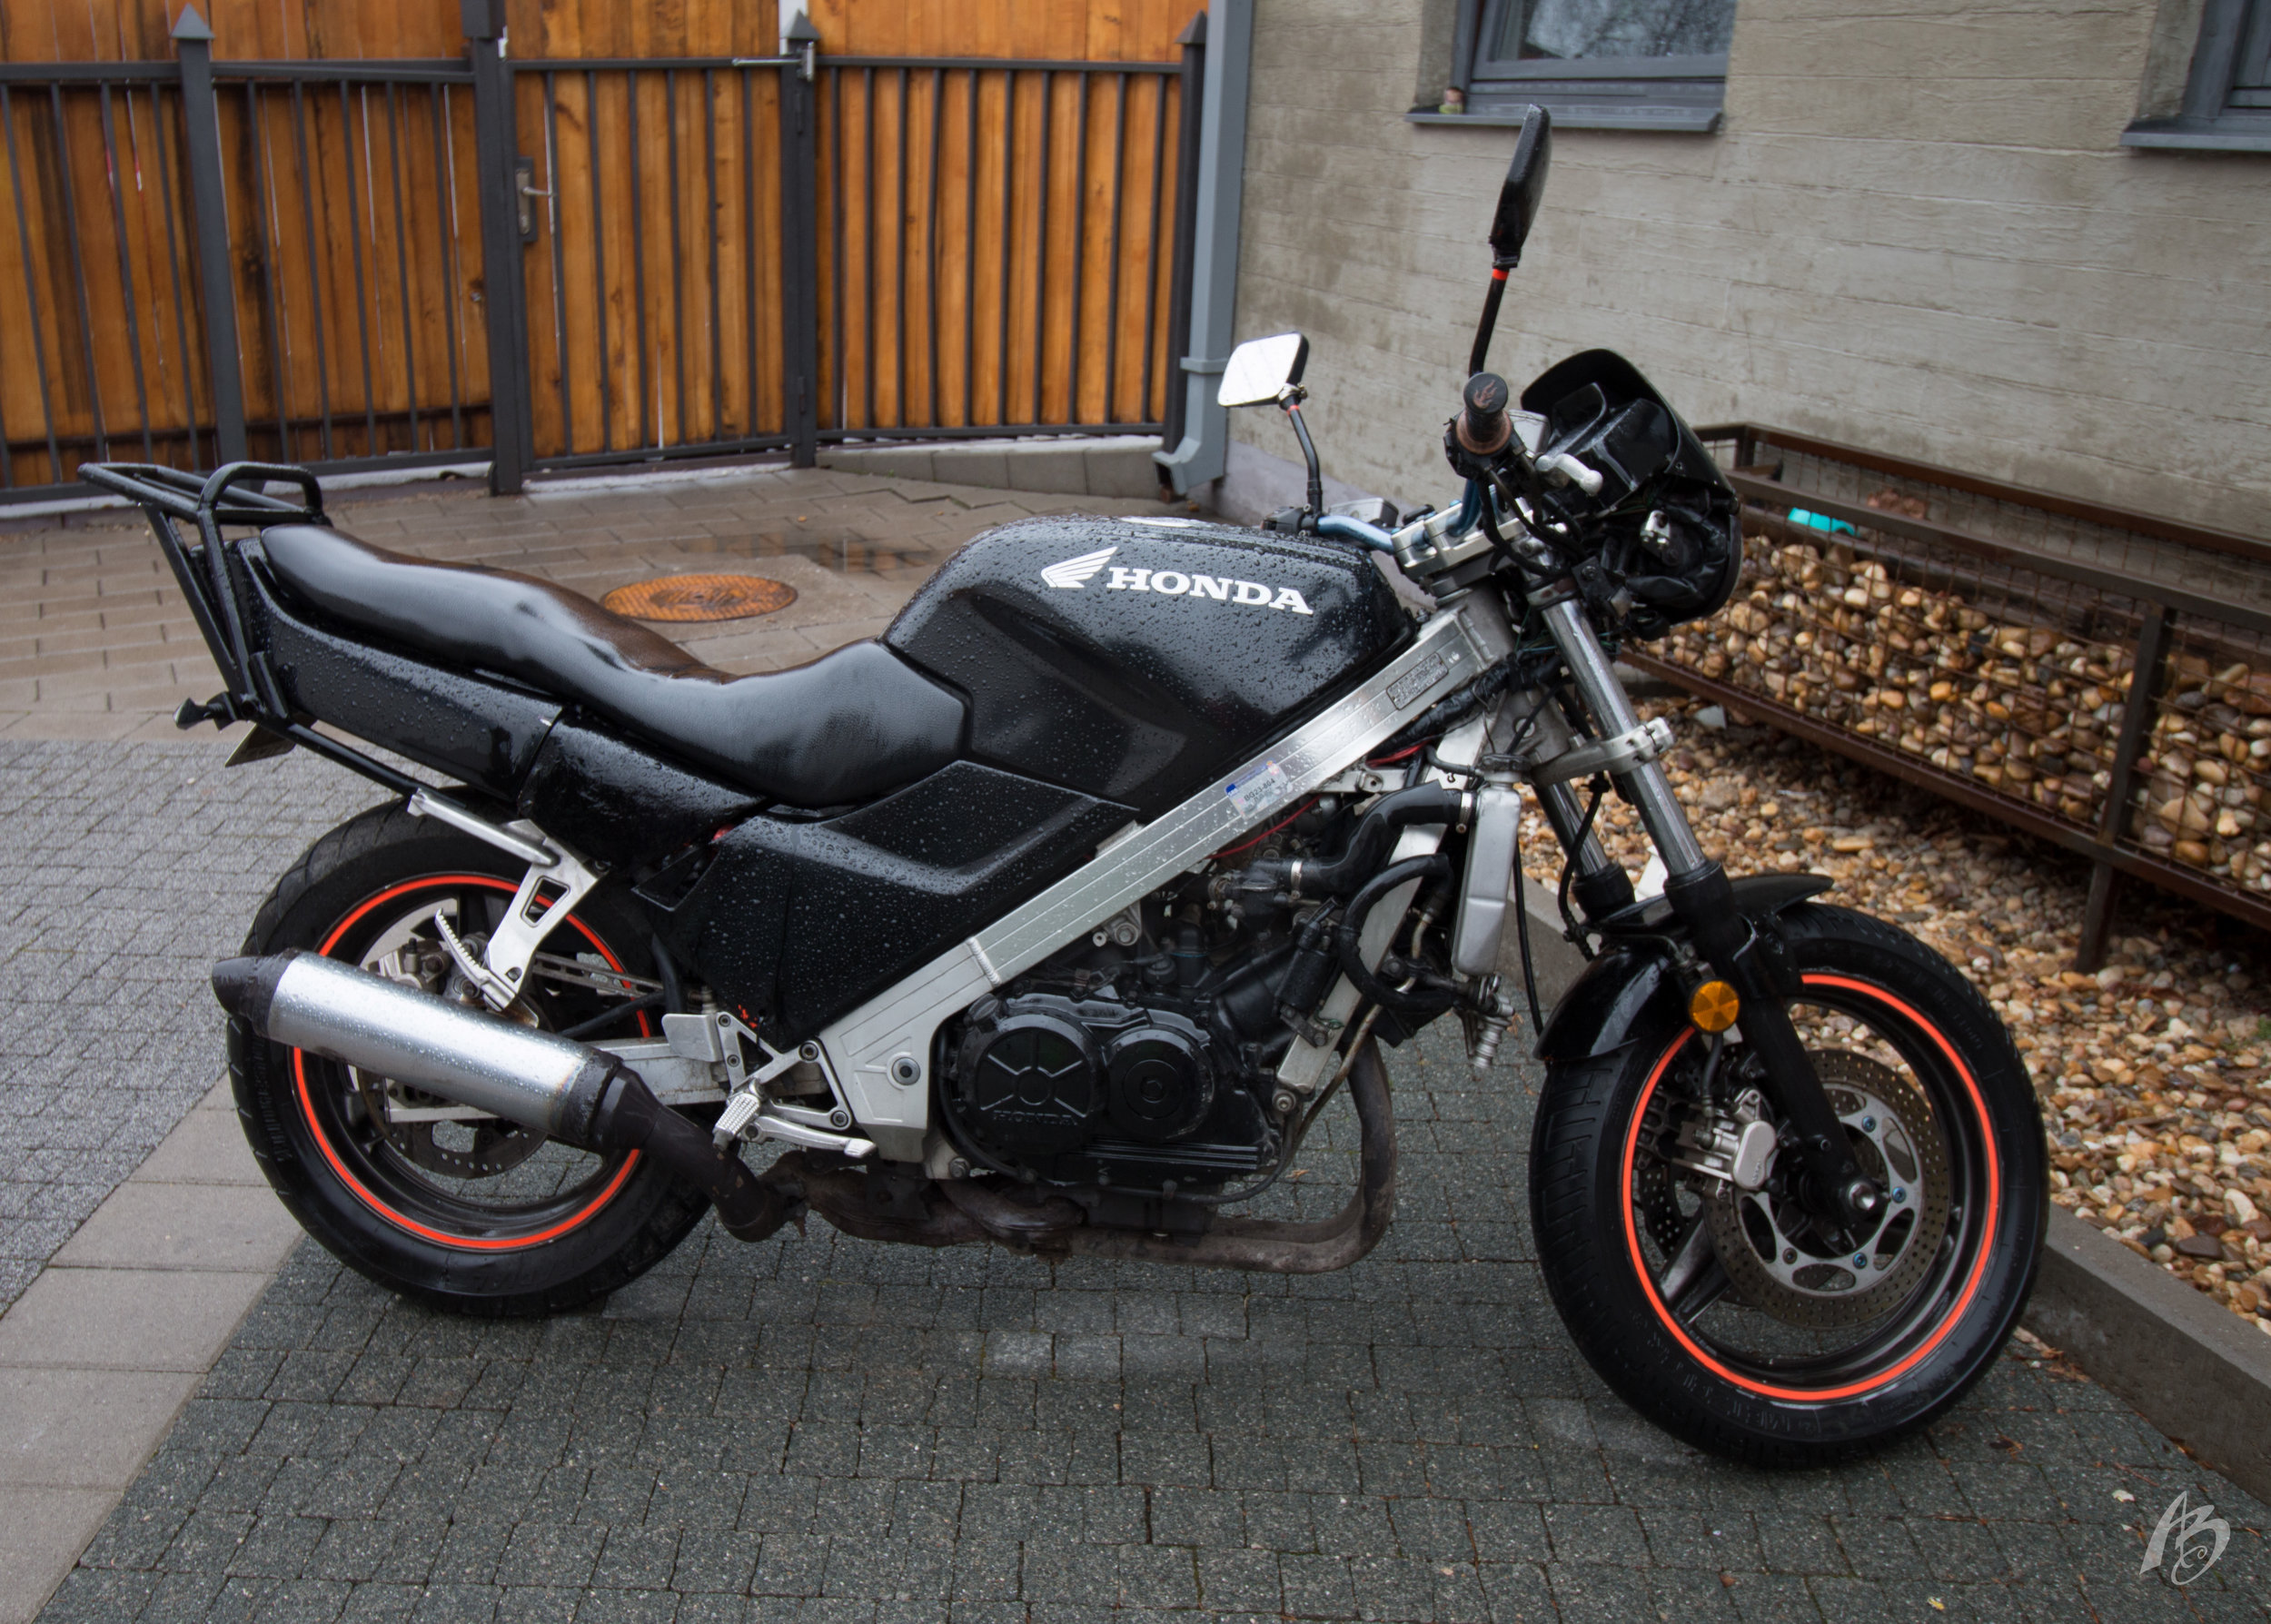 """'89 Honda VFR750F. Some """"custom"""" mods made, but overall in good shape. (Rainy day ☹)"""